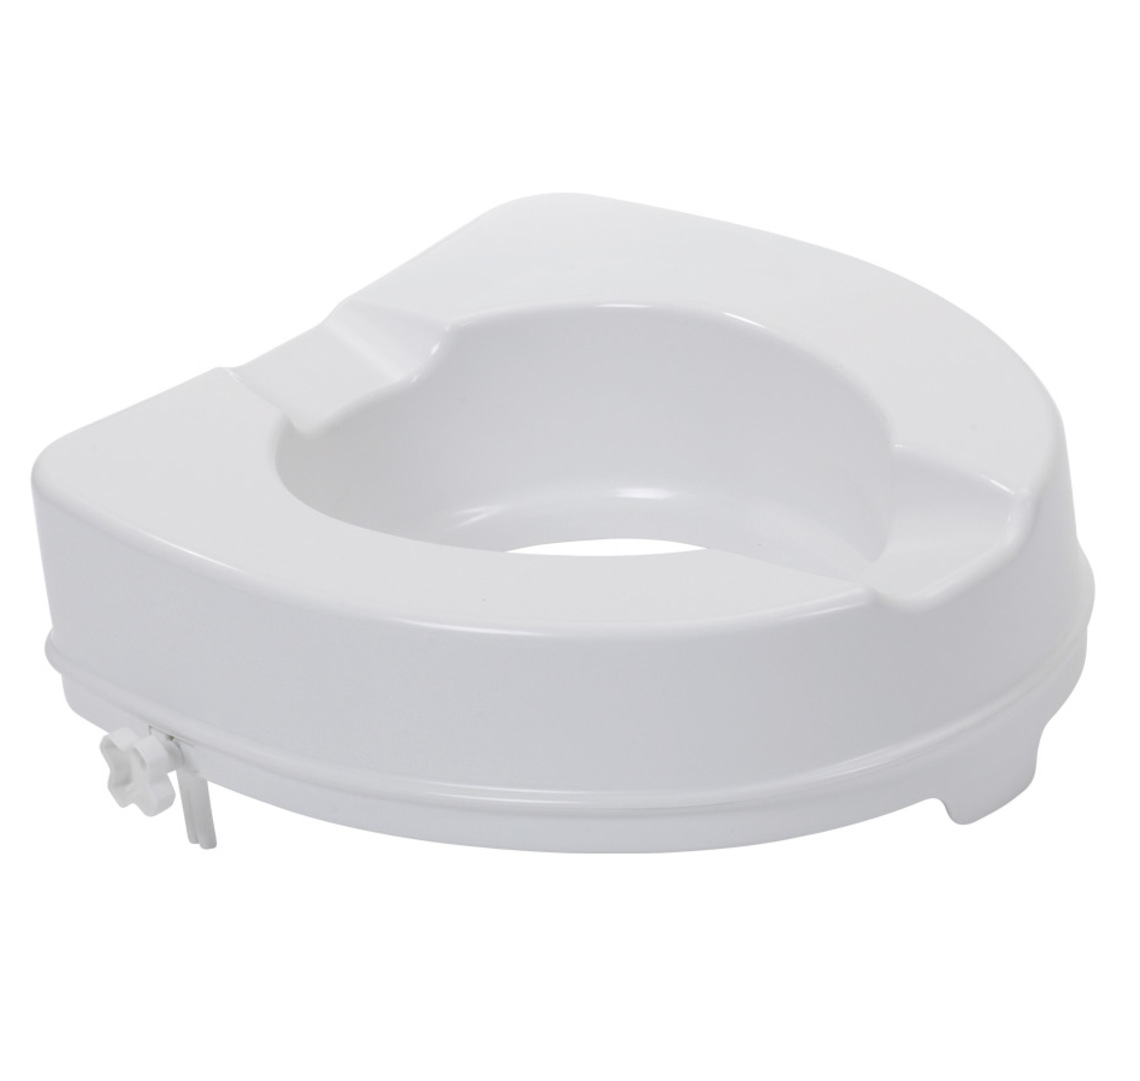 toilet seat no lid. 4inch Raised Toilet Seat  Raised Without Lid Toilet Seat